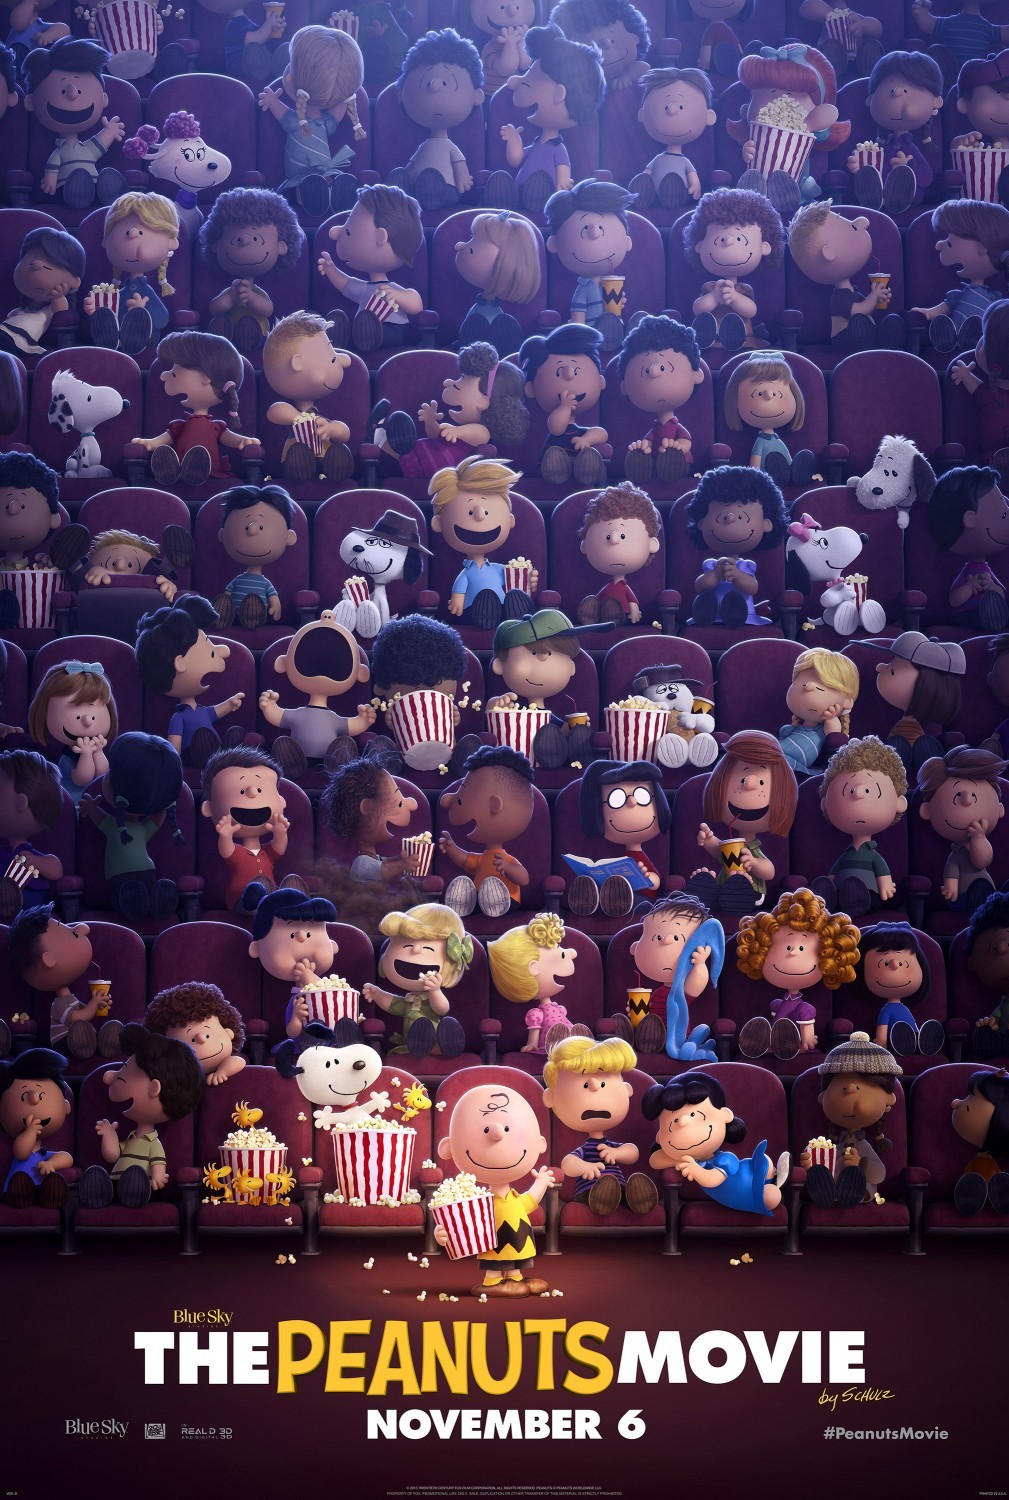 http://static.tvtropes.org/pmwiki/pub/images/the_peanuts_movie_poster.jpg